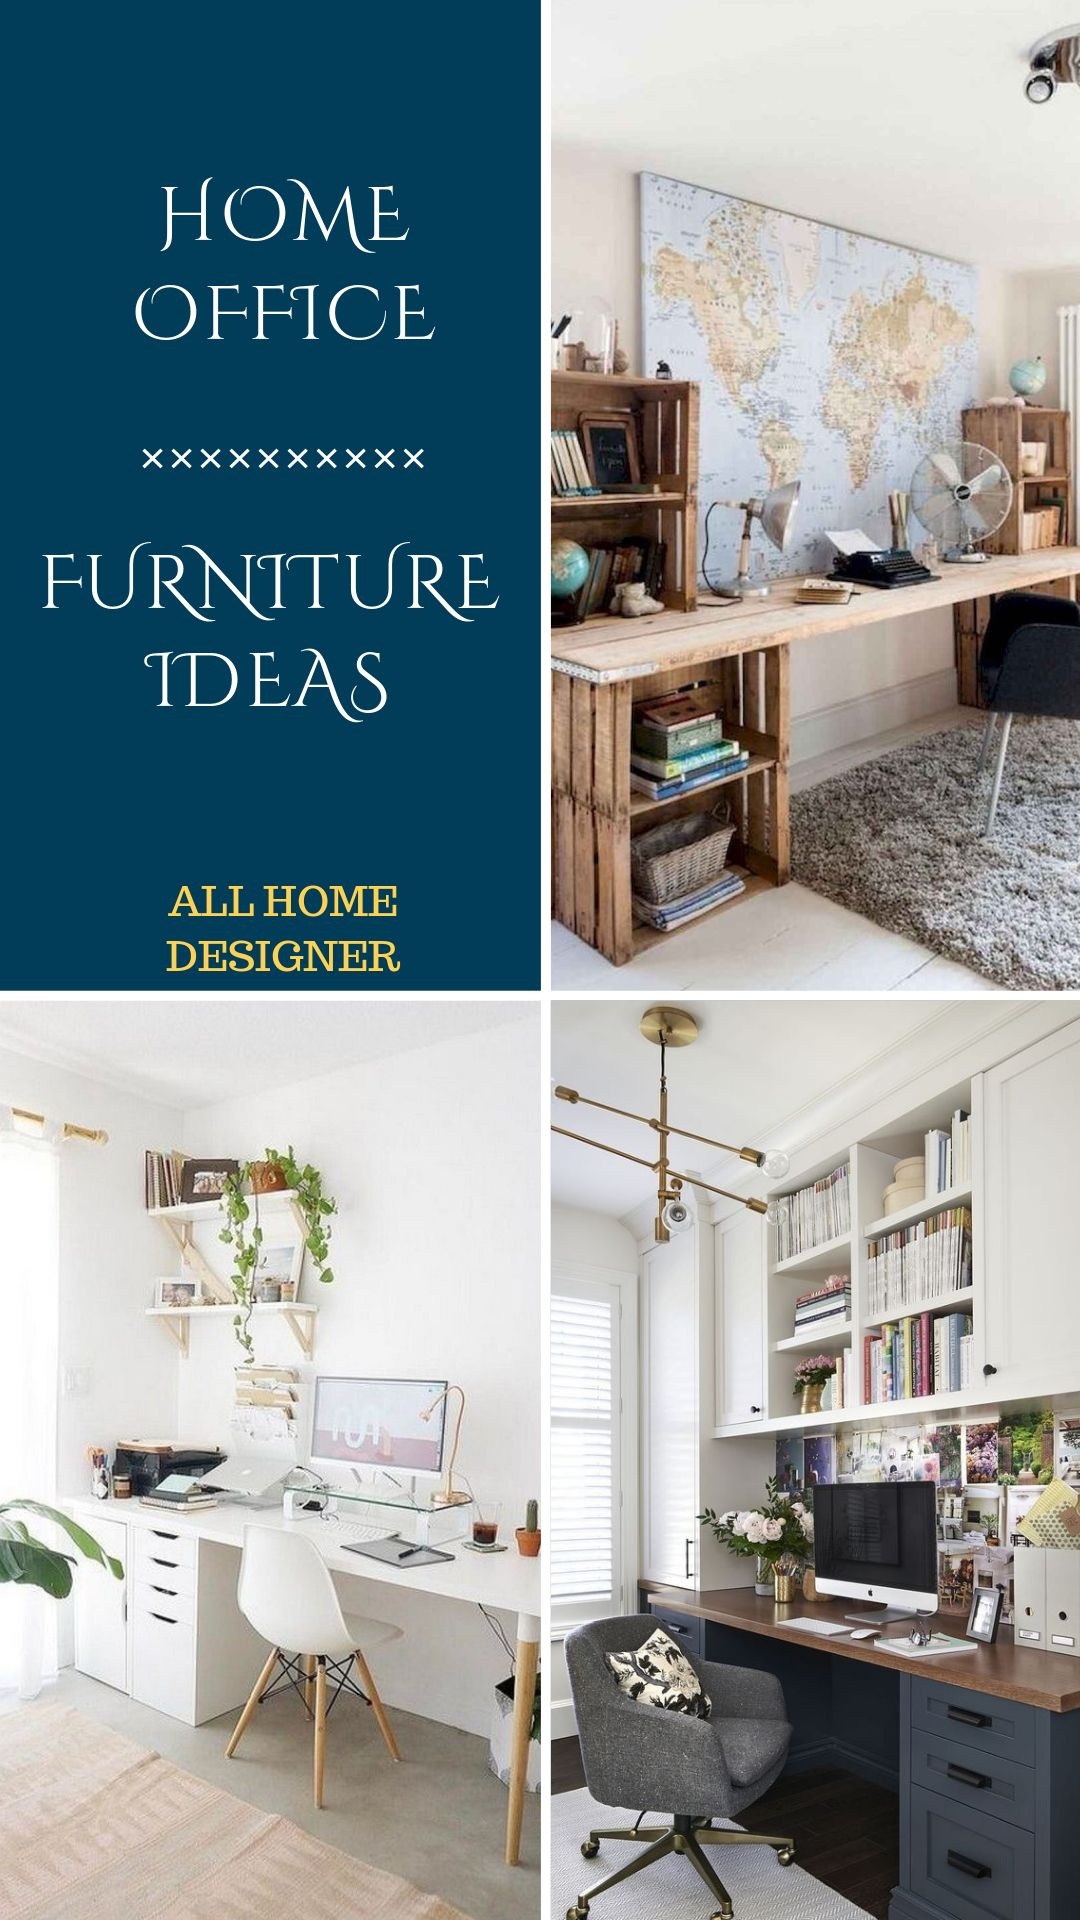 Home Office Furniture Ideas Home Office Home Office Design Small Home Offices